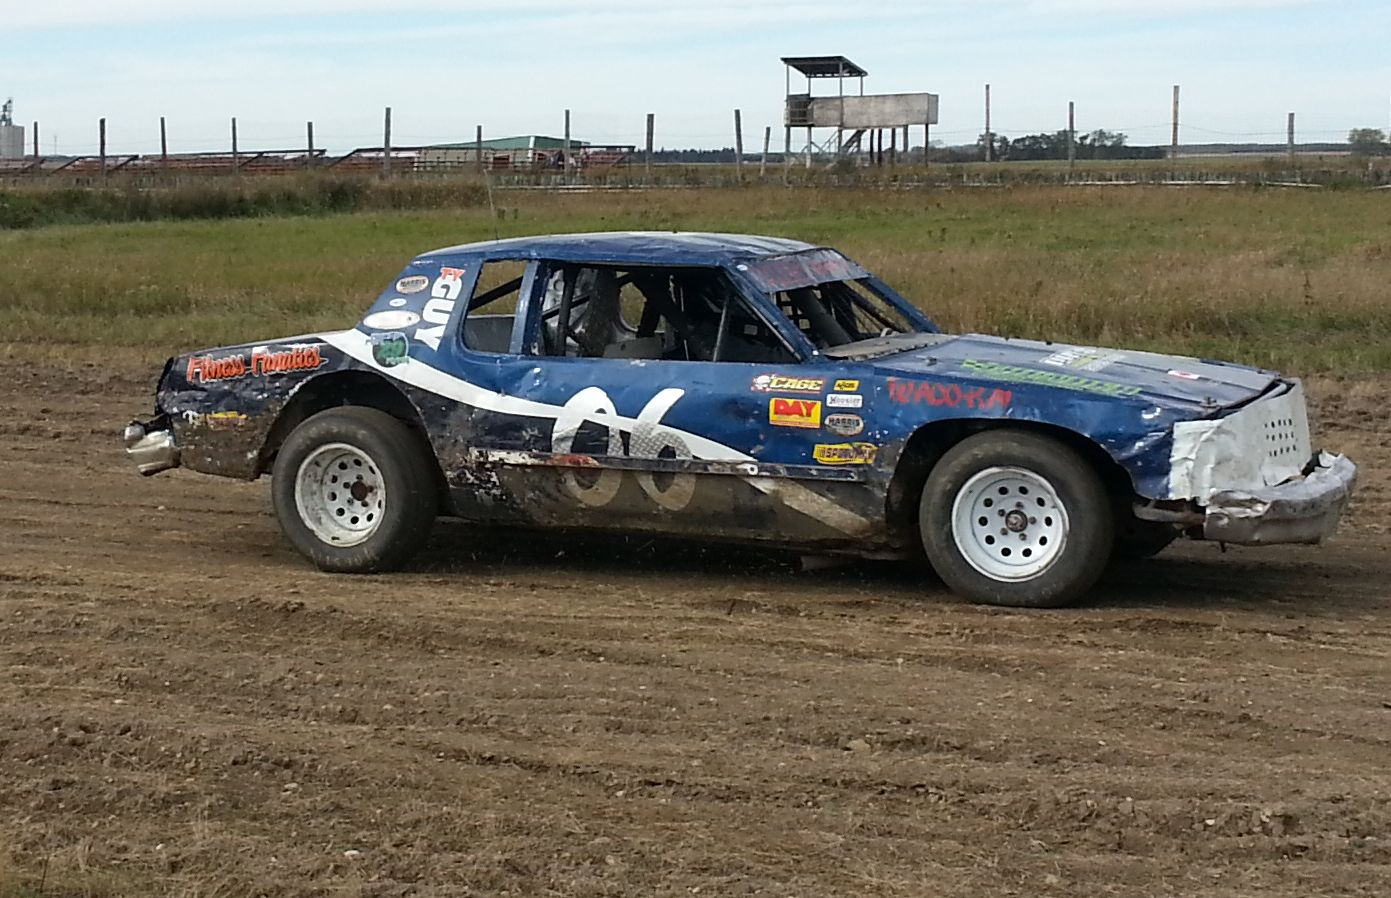 An example of a class of race car that may be running at Souris in the future.